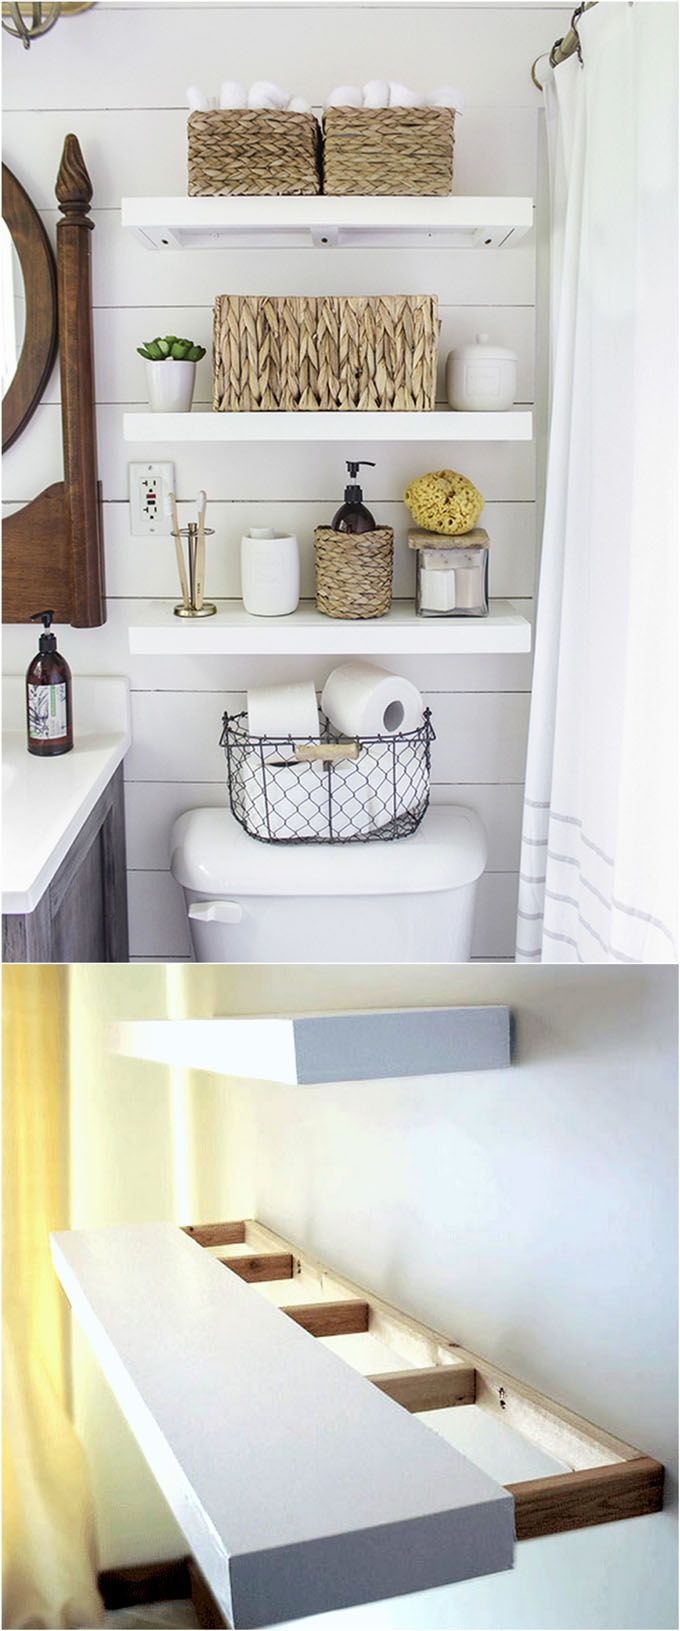 Best 25+ Floating shelves bathroom ideas on Pinterest ...